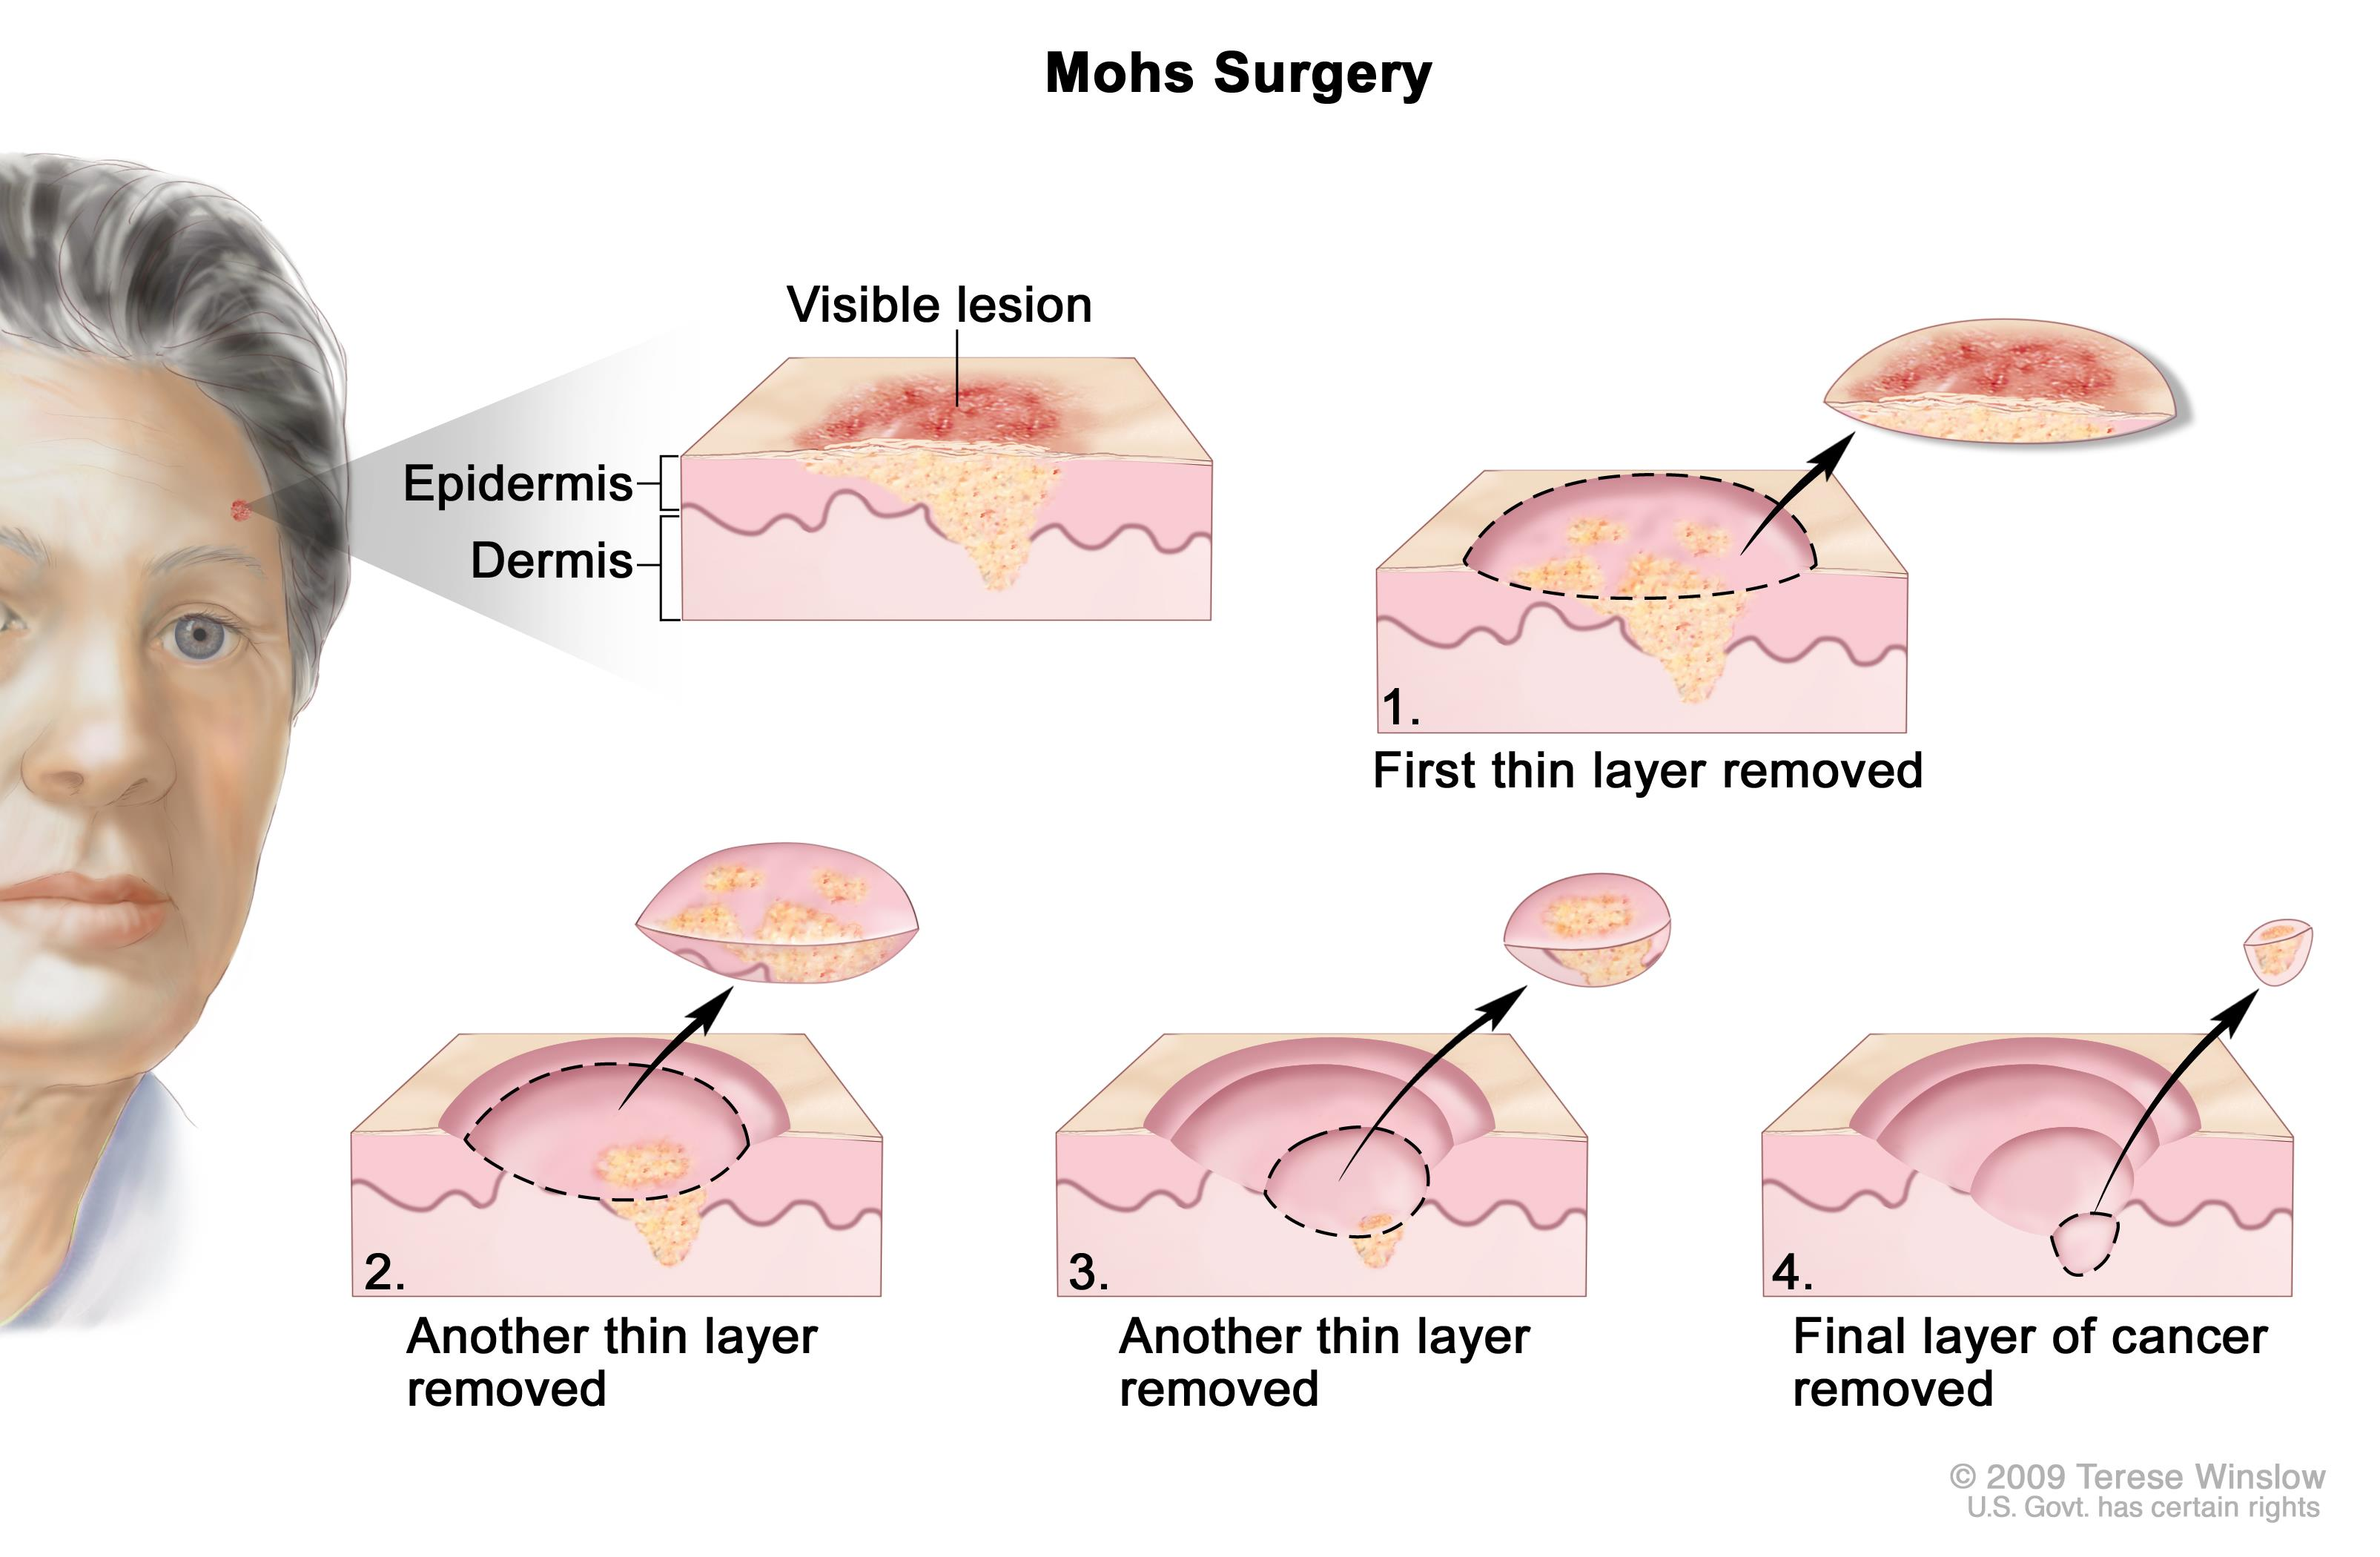 Which Surgical Procedure Uses Cold Cdr